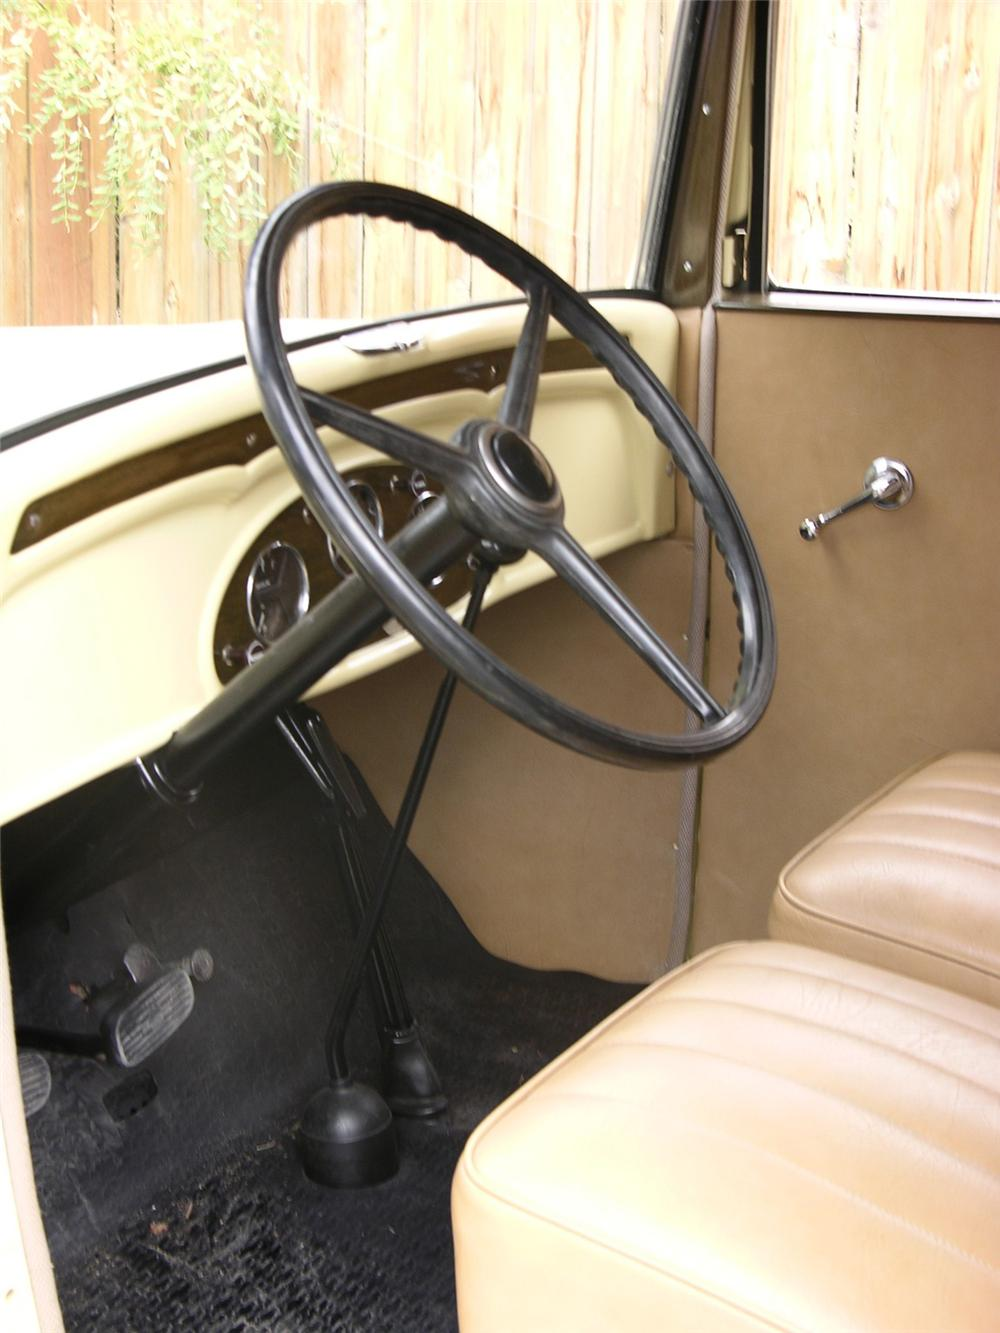 1933 CHEVROLET SEDAN DELIVERY SEDAN - Interior - 43518